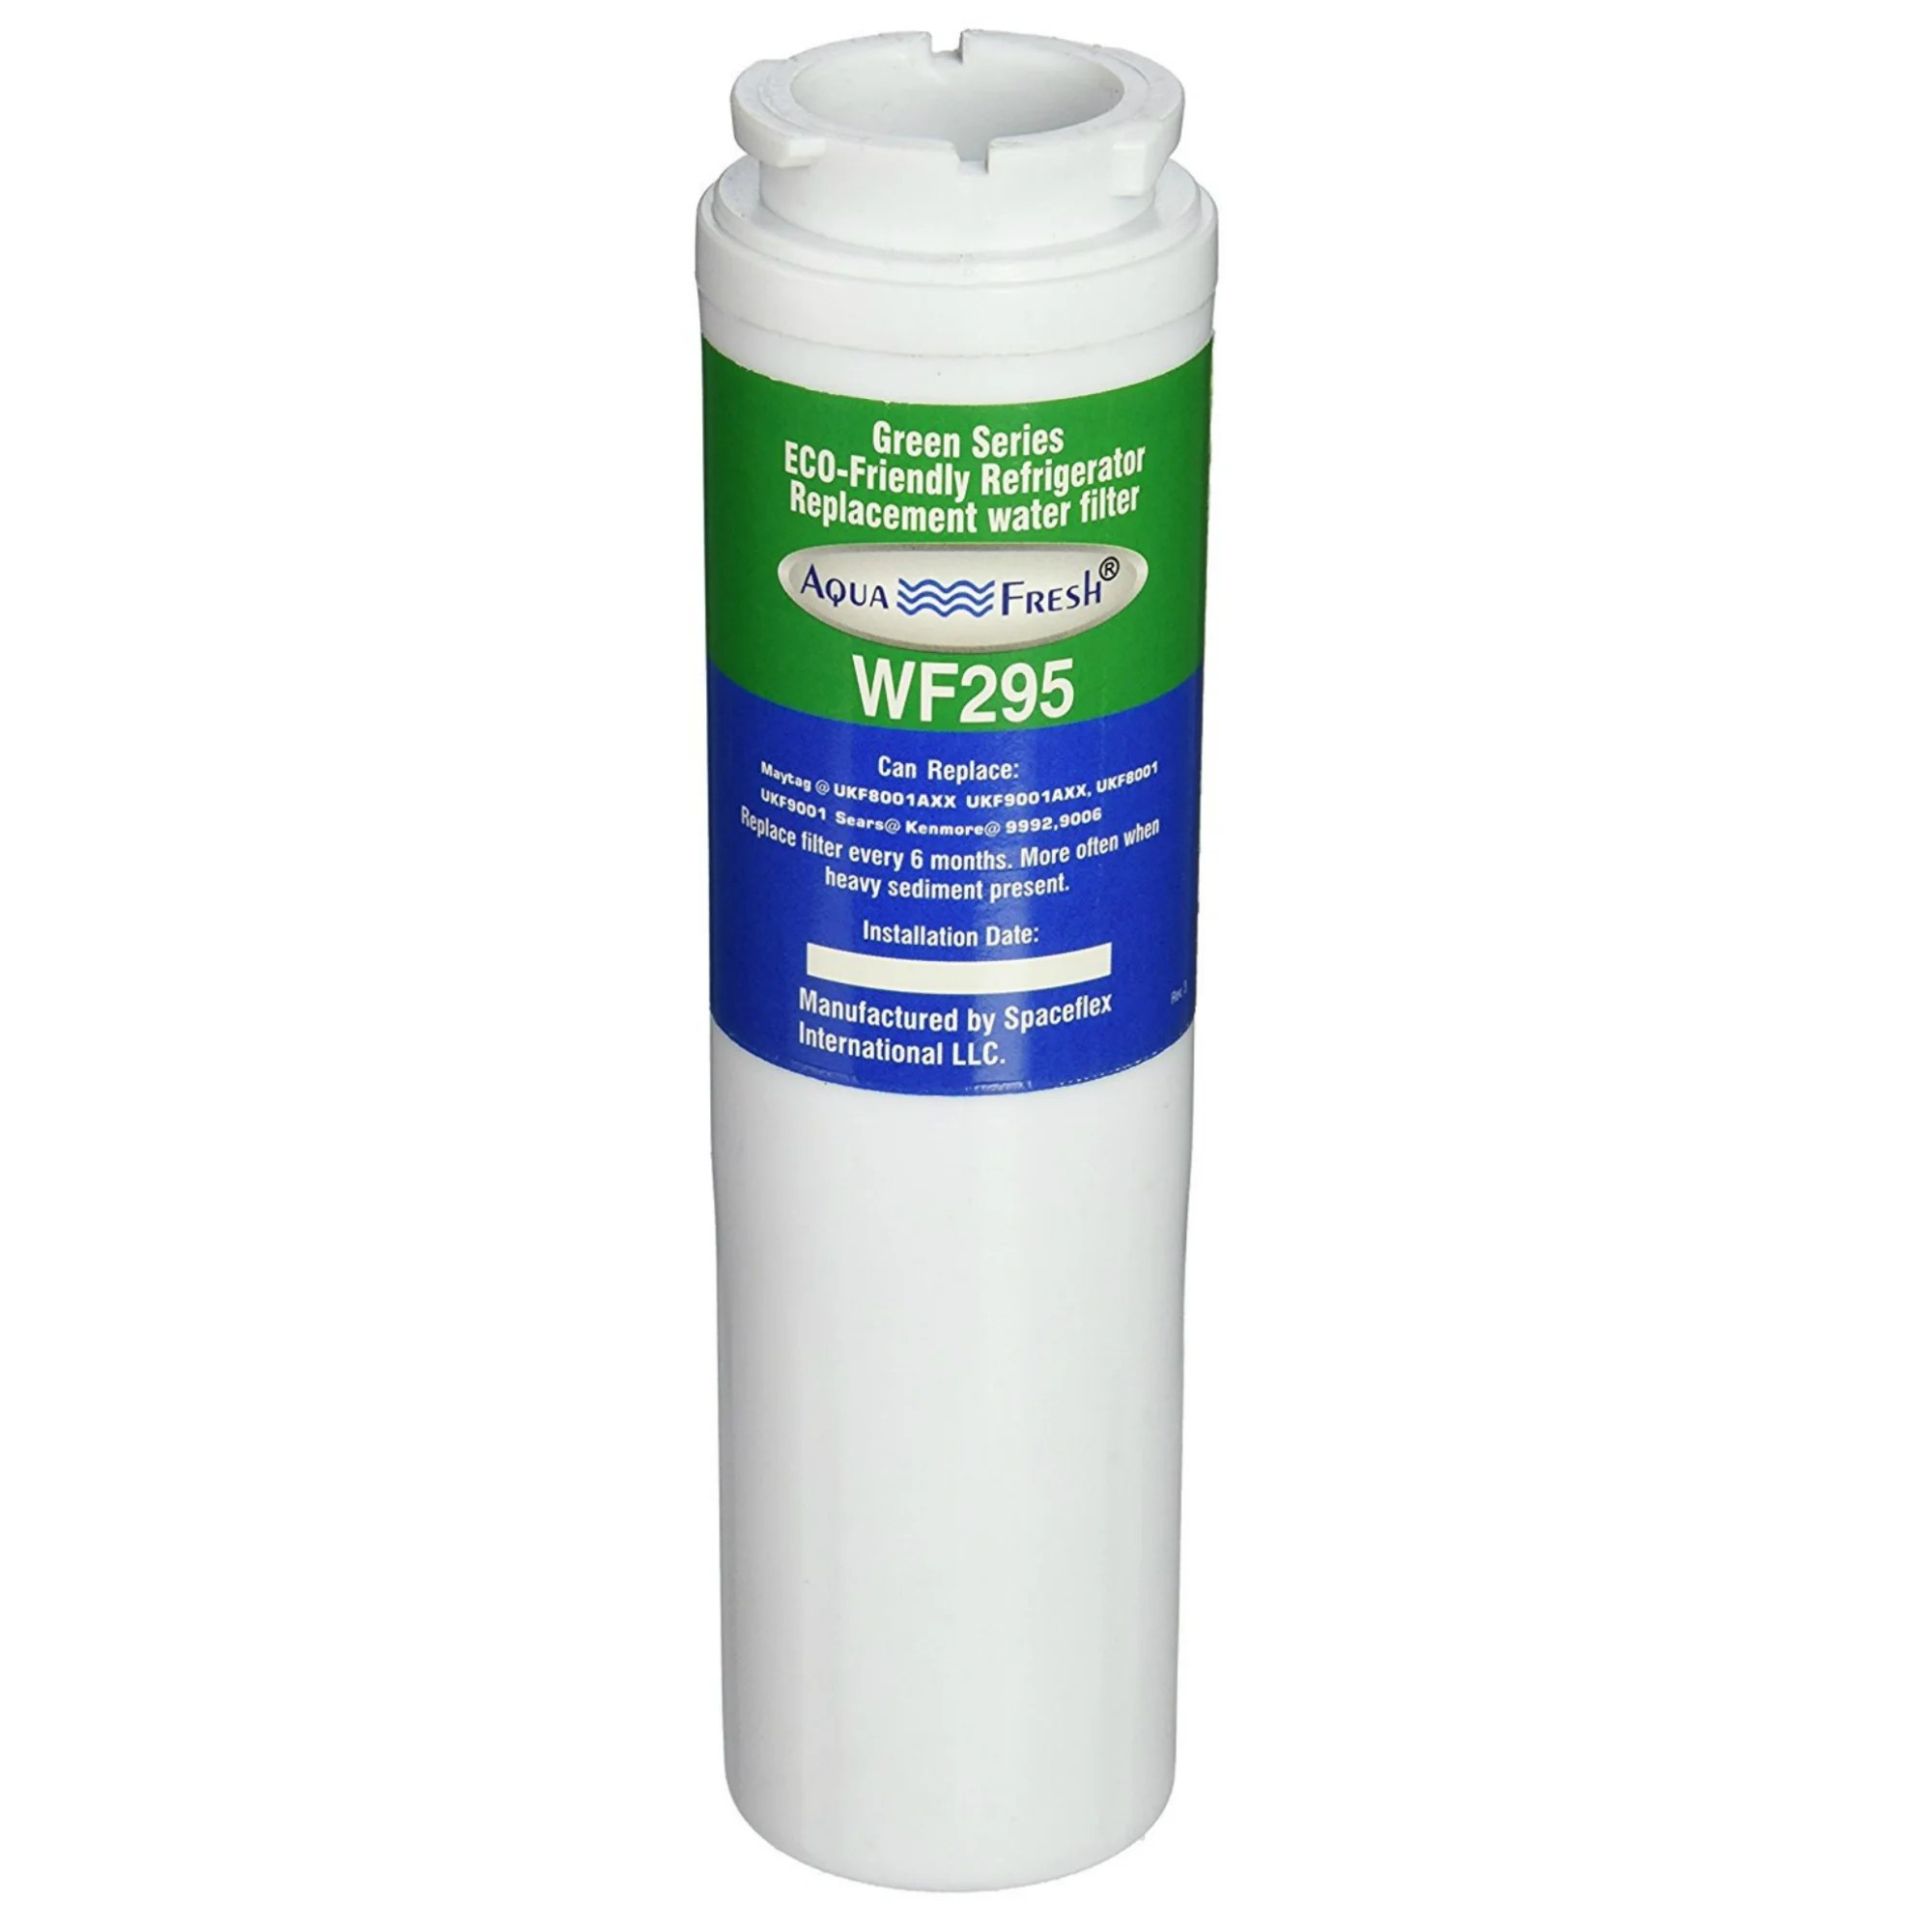 Kitchenaid Krff302ess Replacement Water Filter For Kitchenaid Krff302ess Refrigerator Water Filter By Aqua Fresh